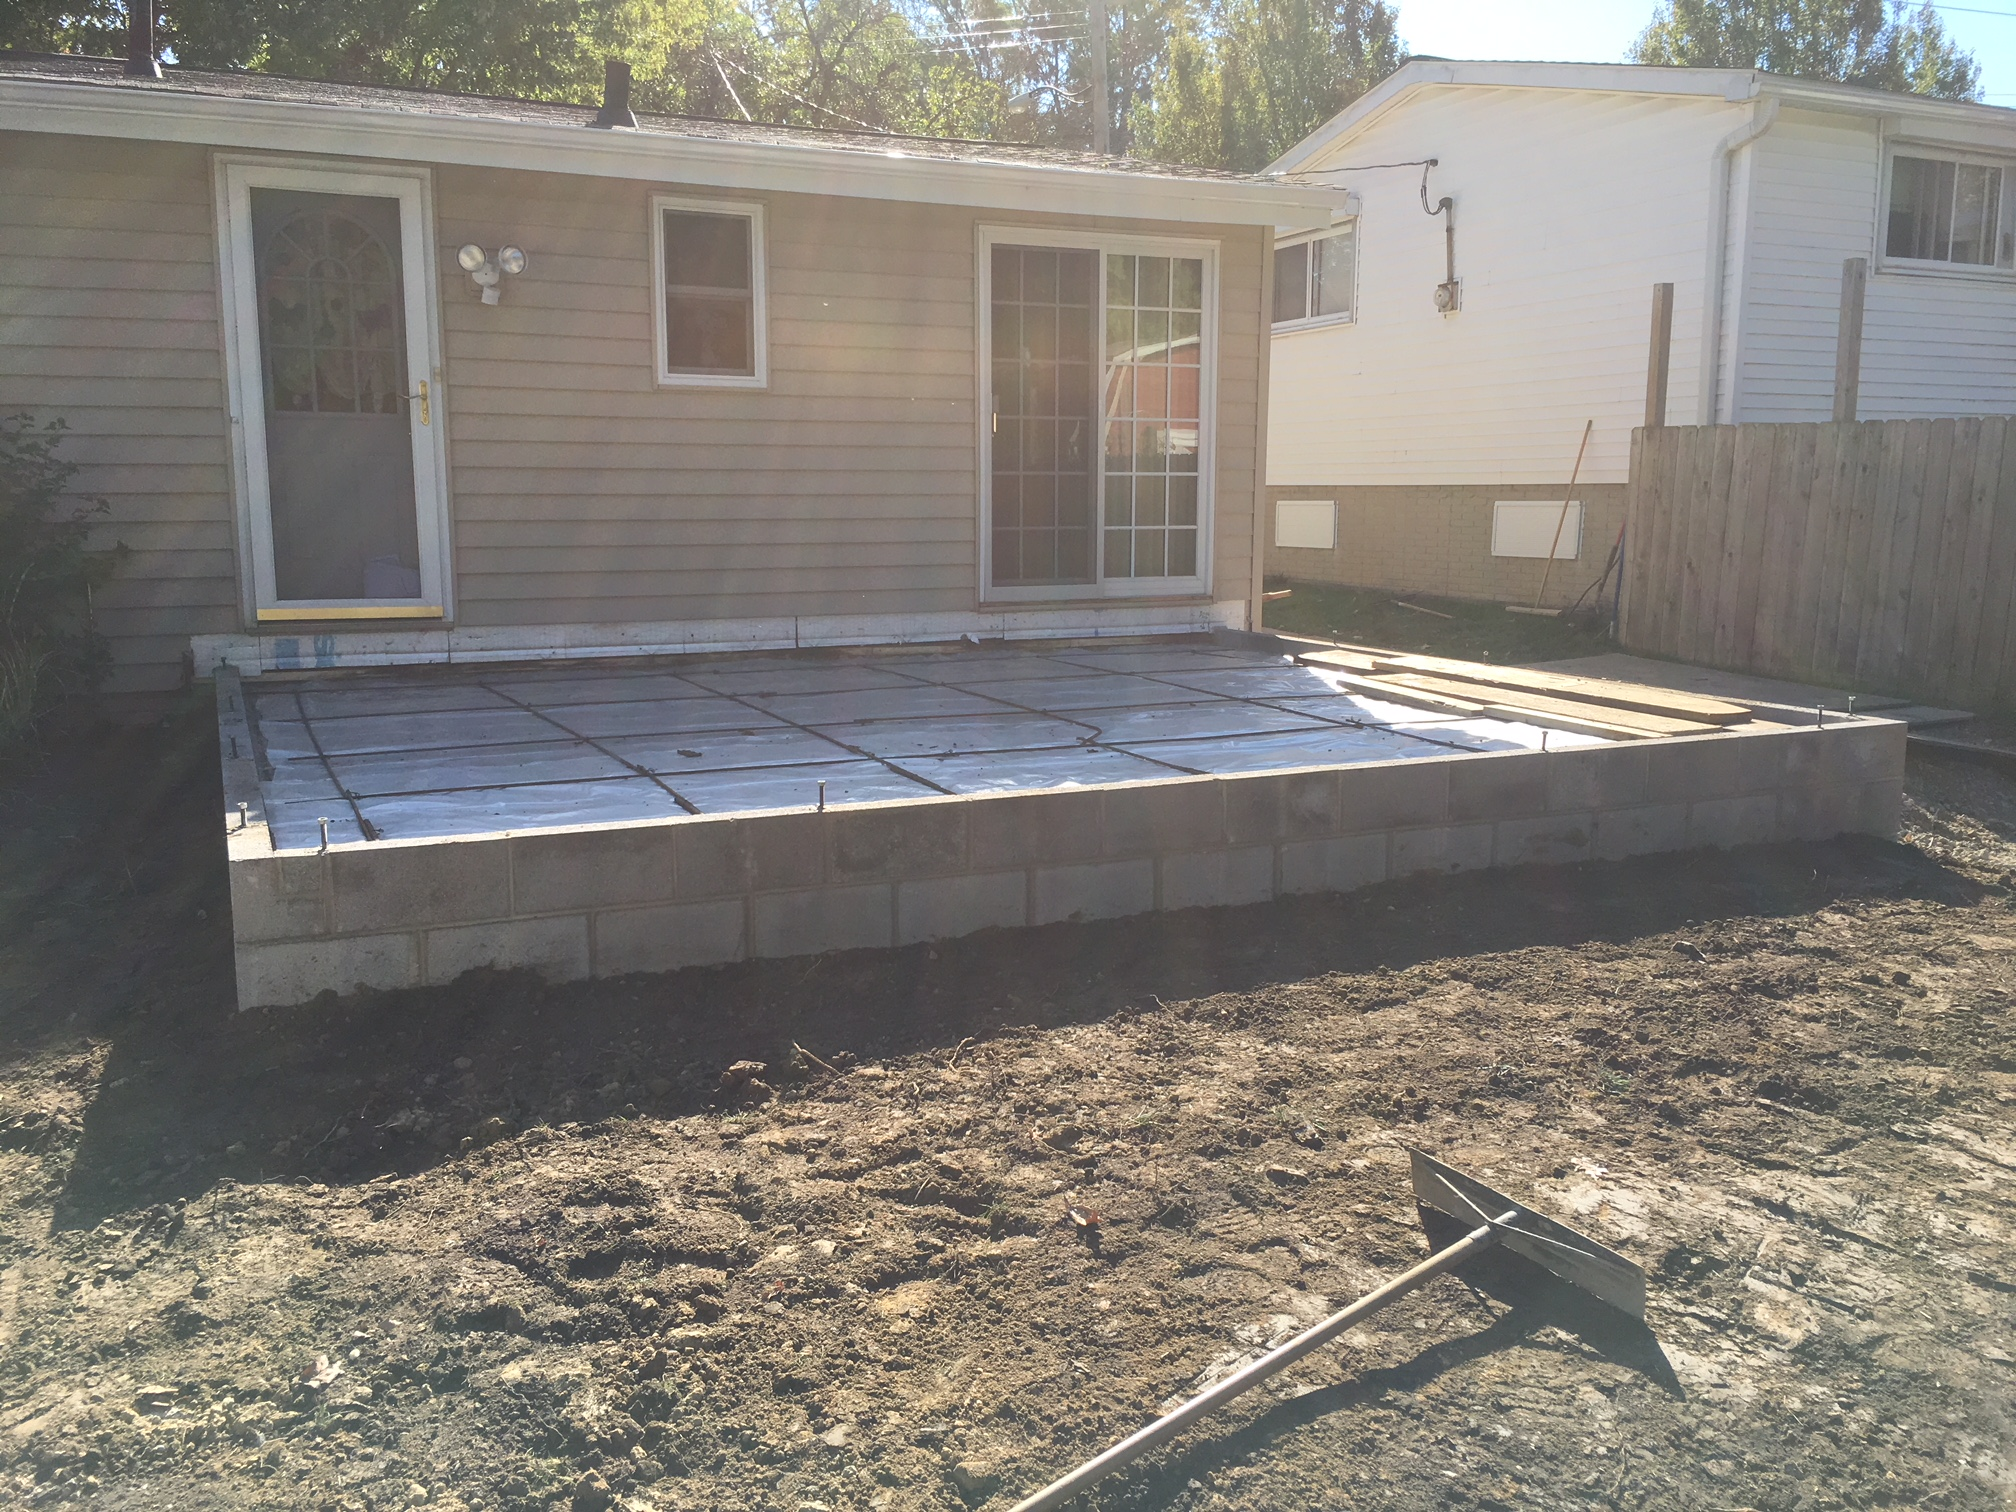 Masonry slab foundation for a new addition